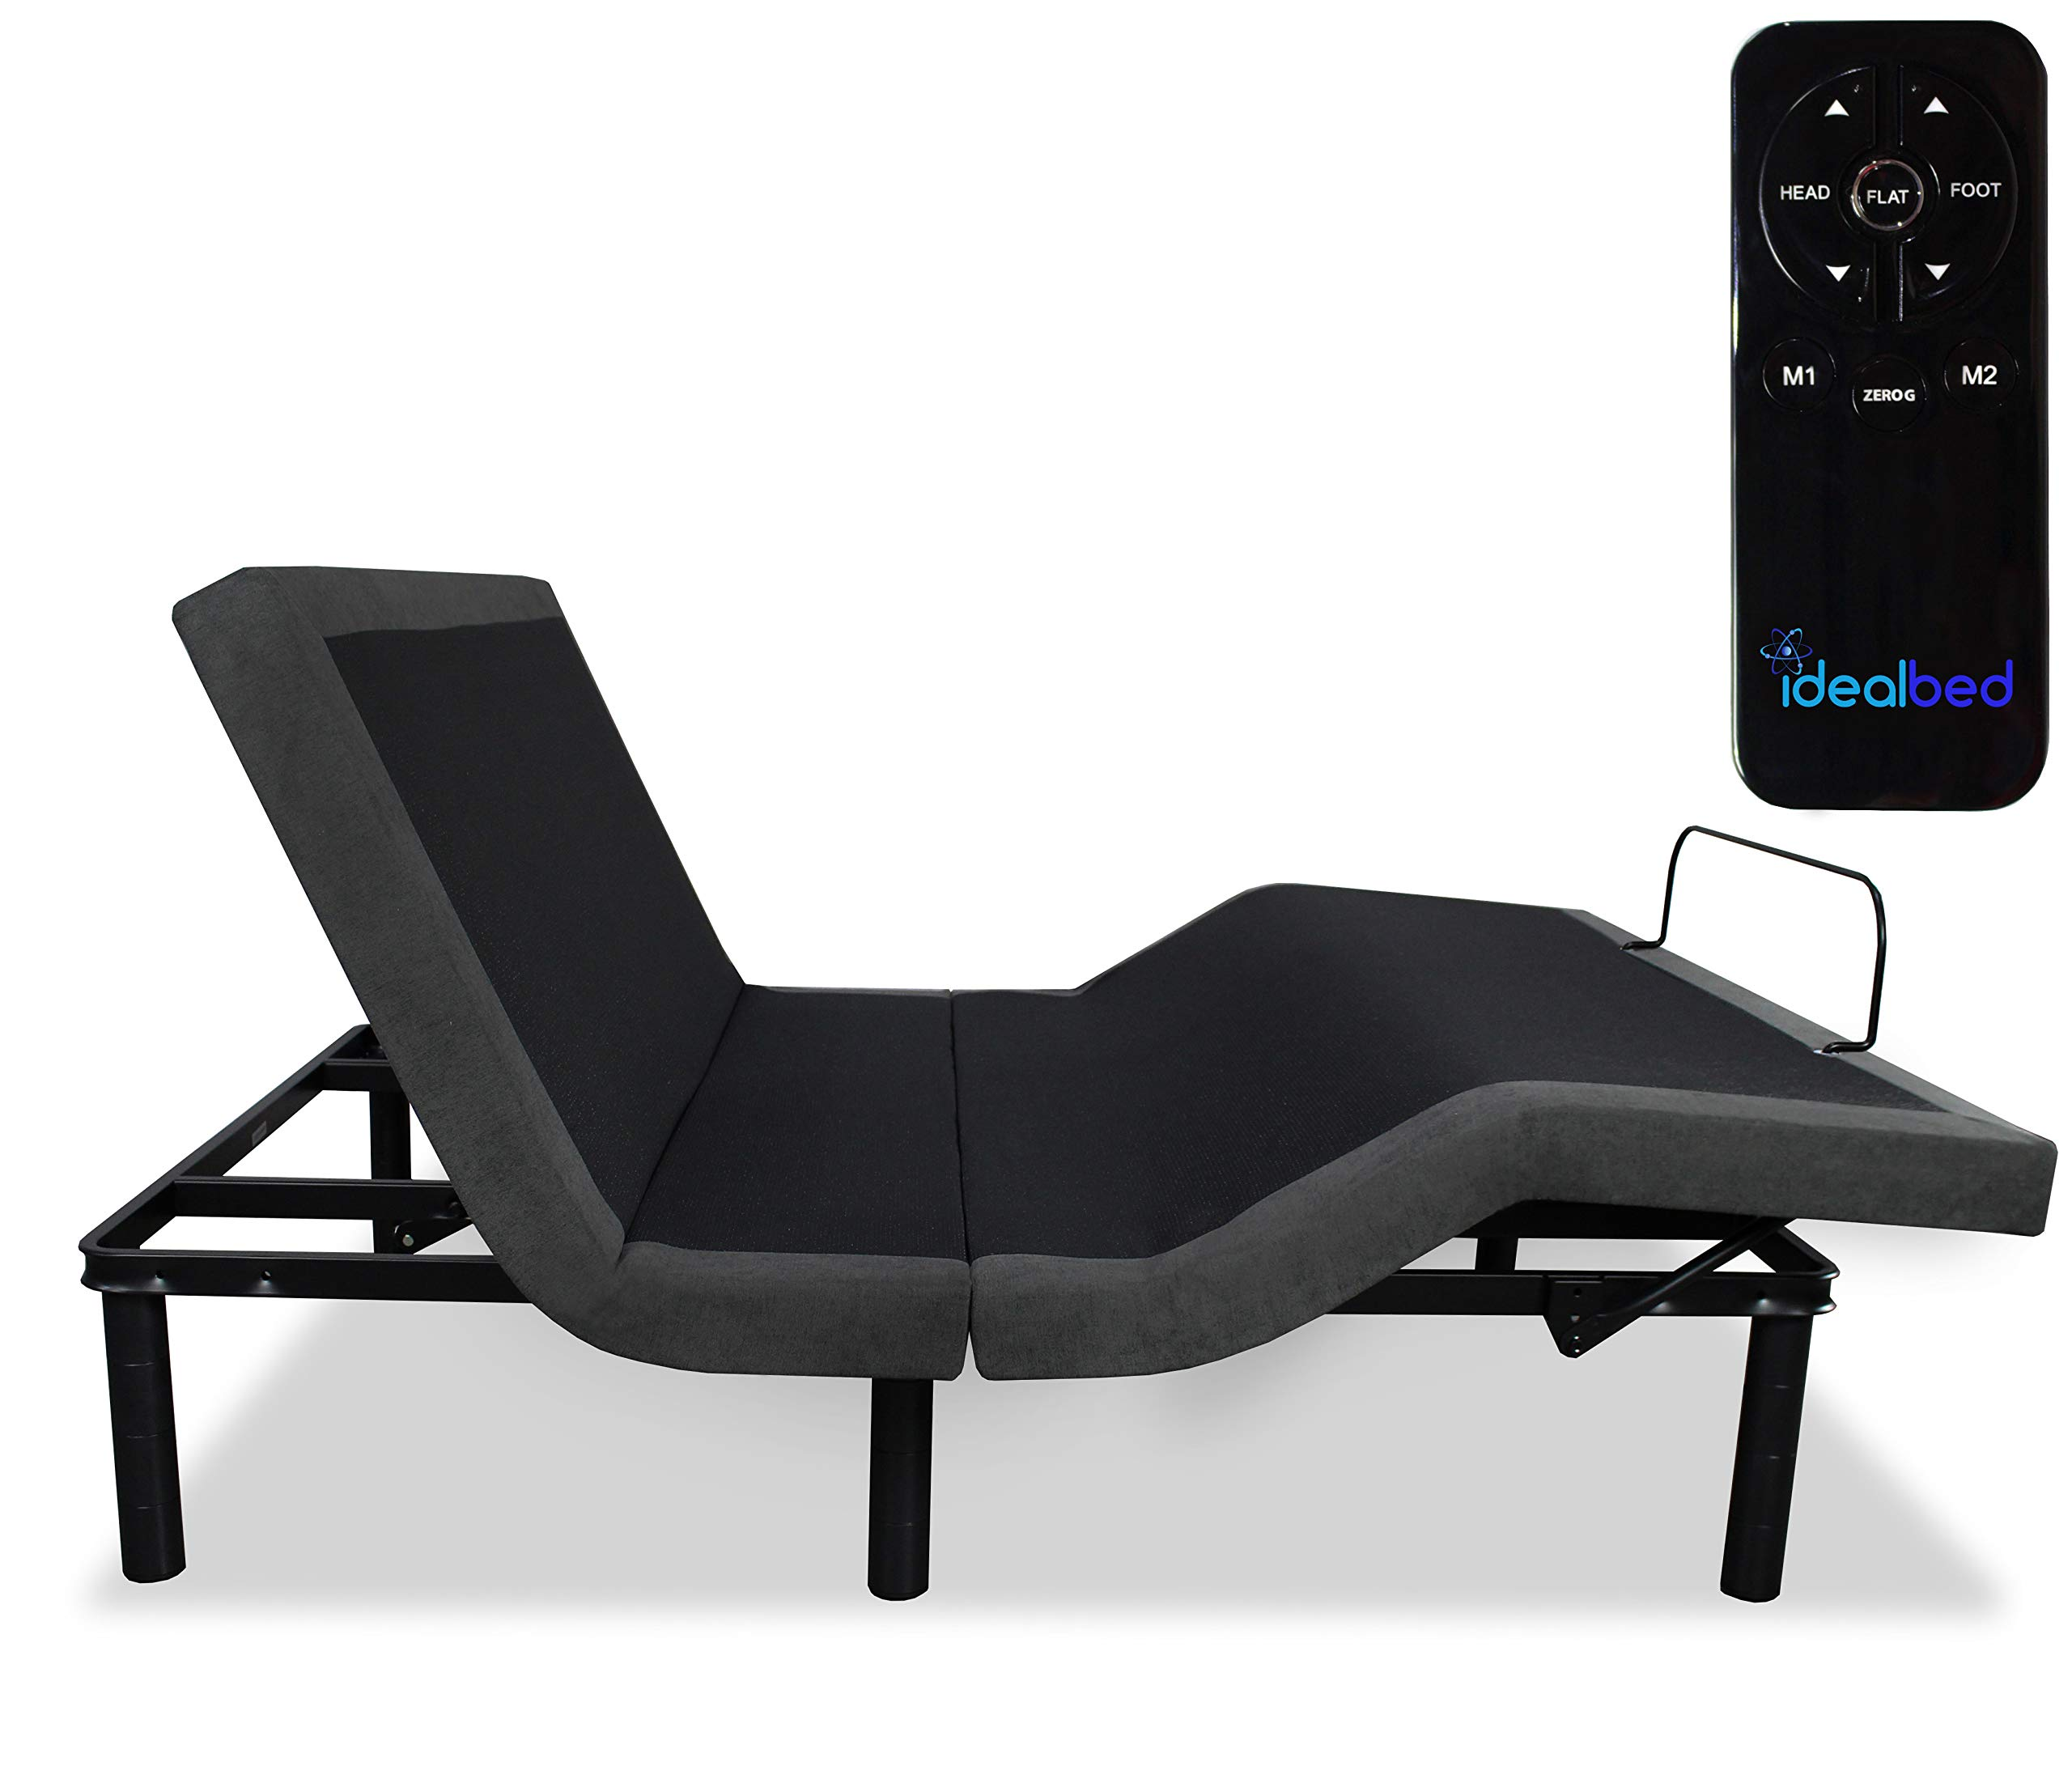 iDealBed 3i Custom Adjustable Bed Base, Wireless, Zero Gravity, One Touch Comfort Positions, Programmable Memory, Advanced Smooth Silent Operation (Full)